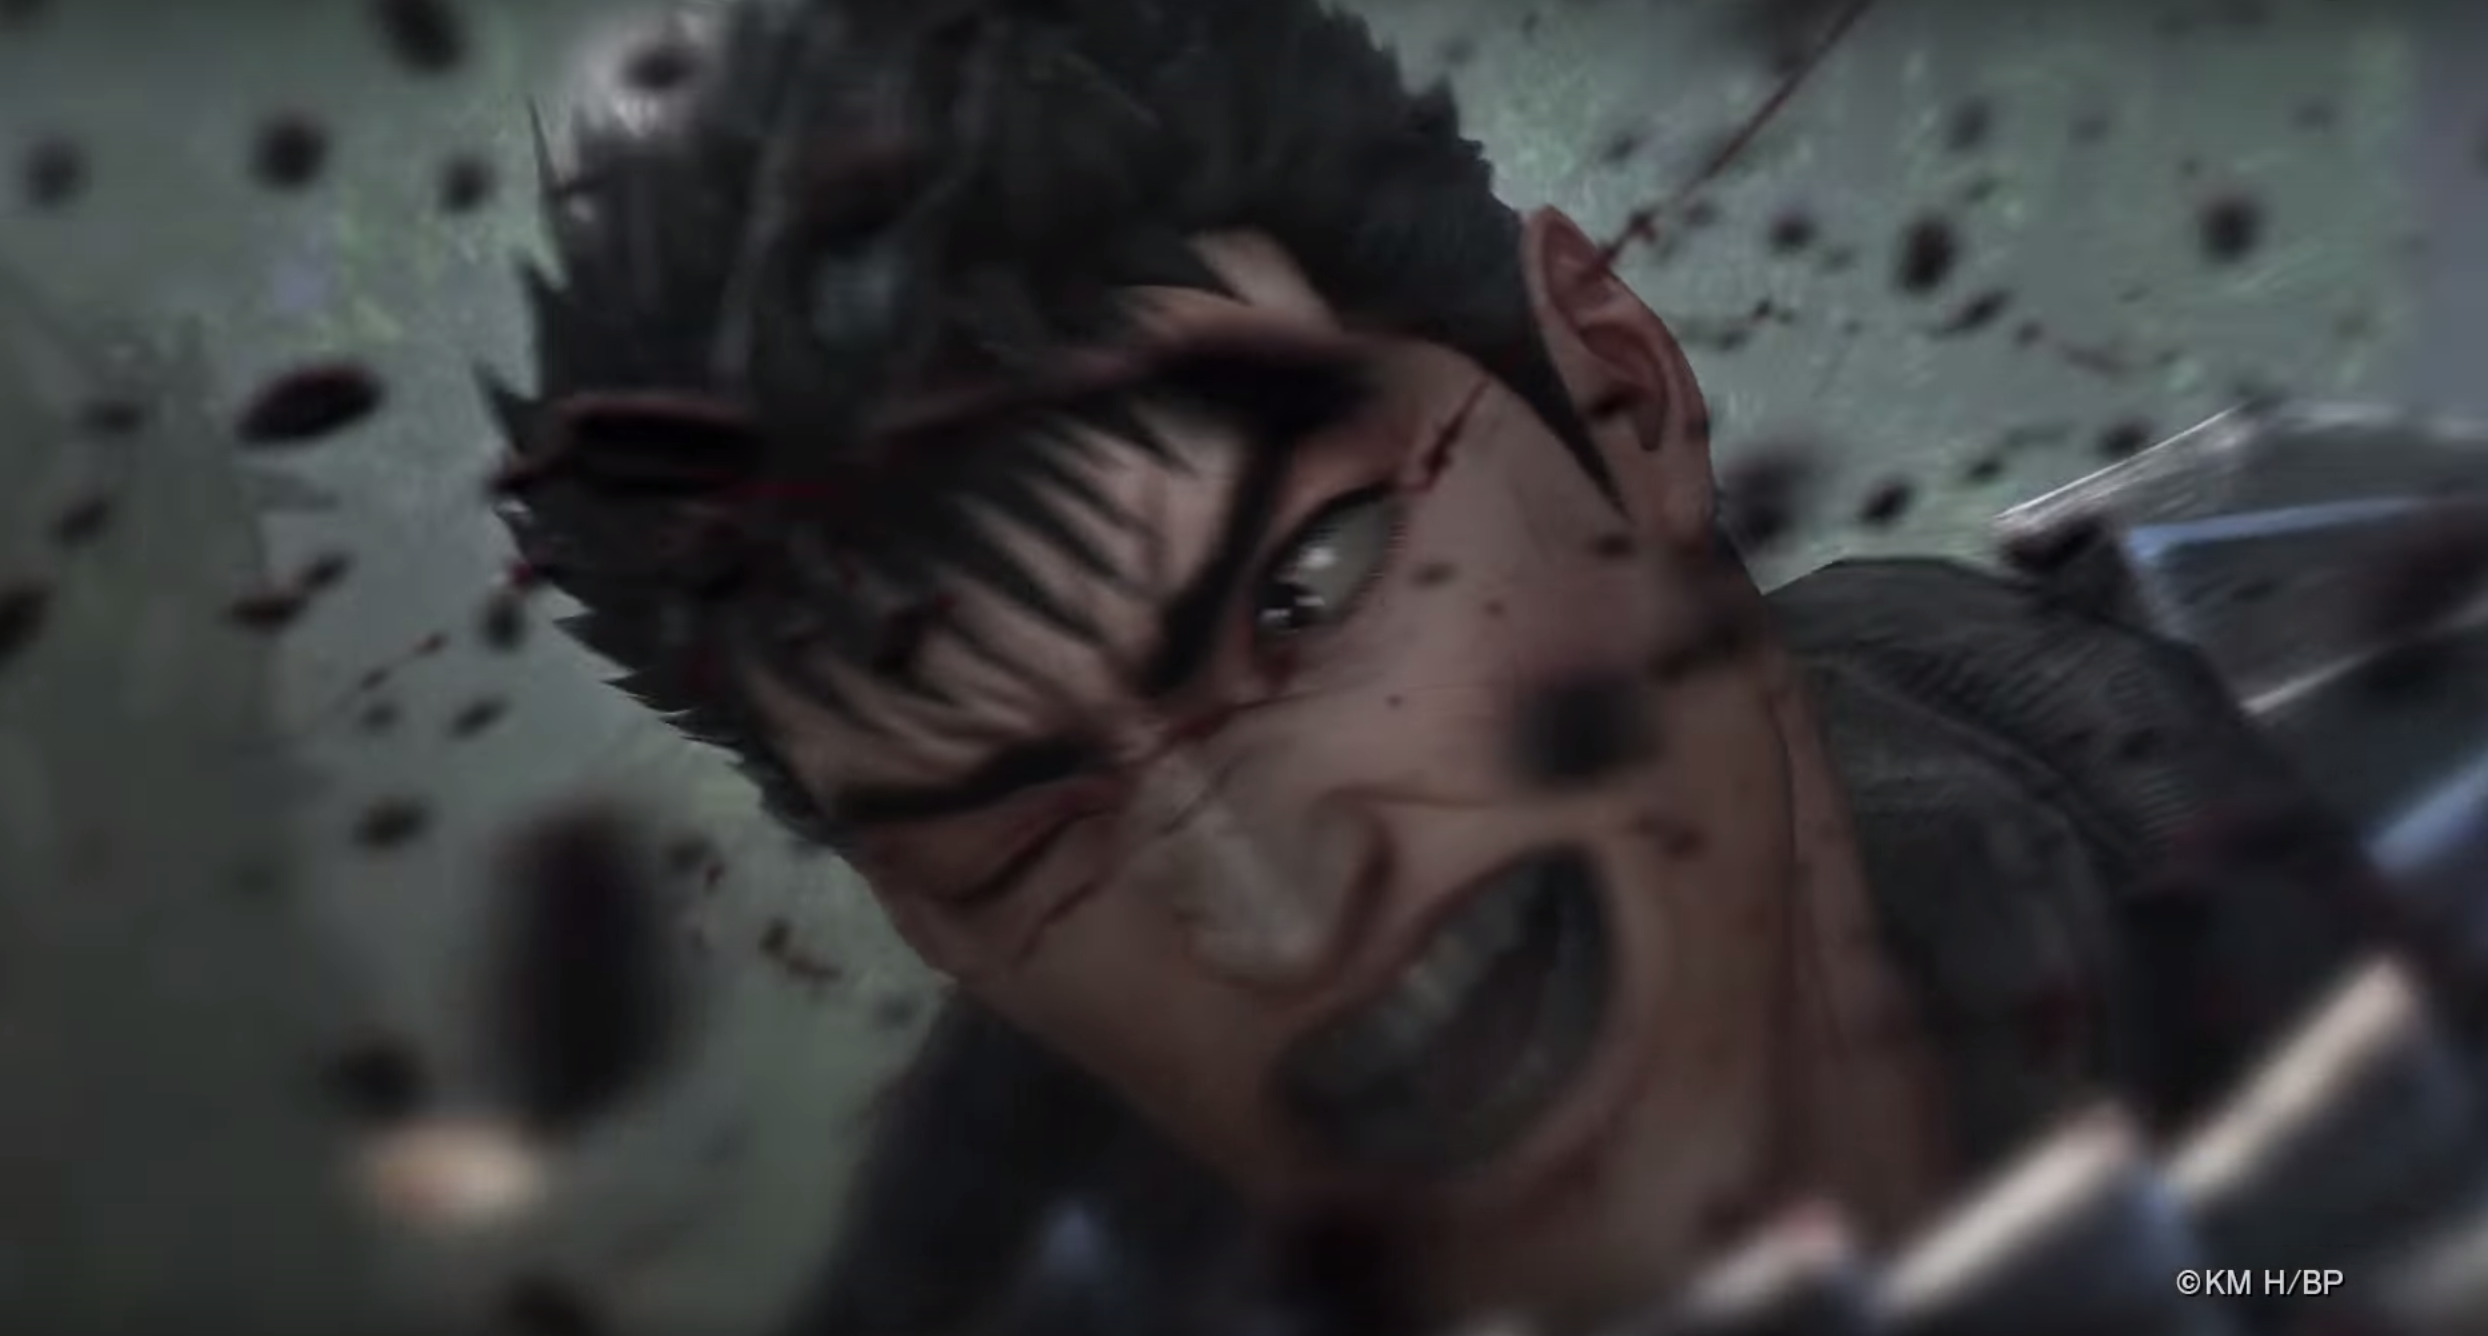 Berserk – PS3/PS4/Vita Game in Arbeit